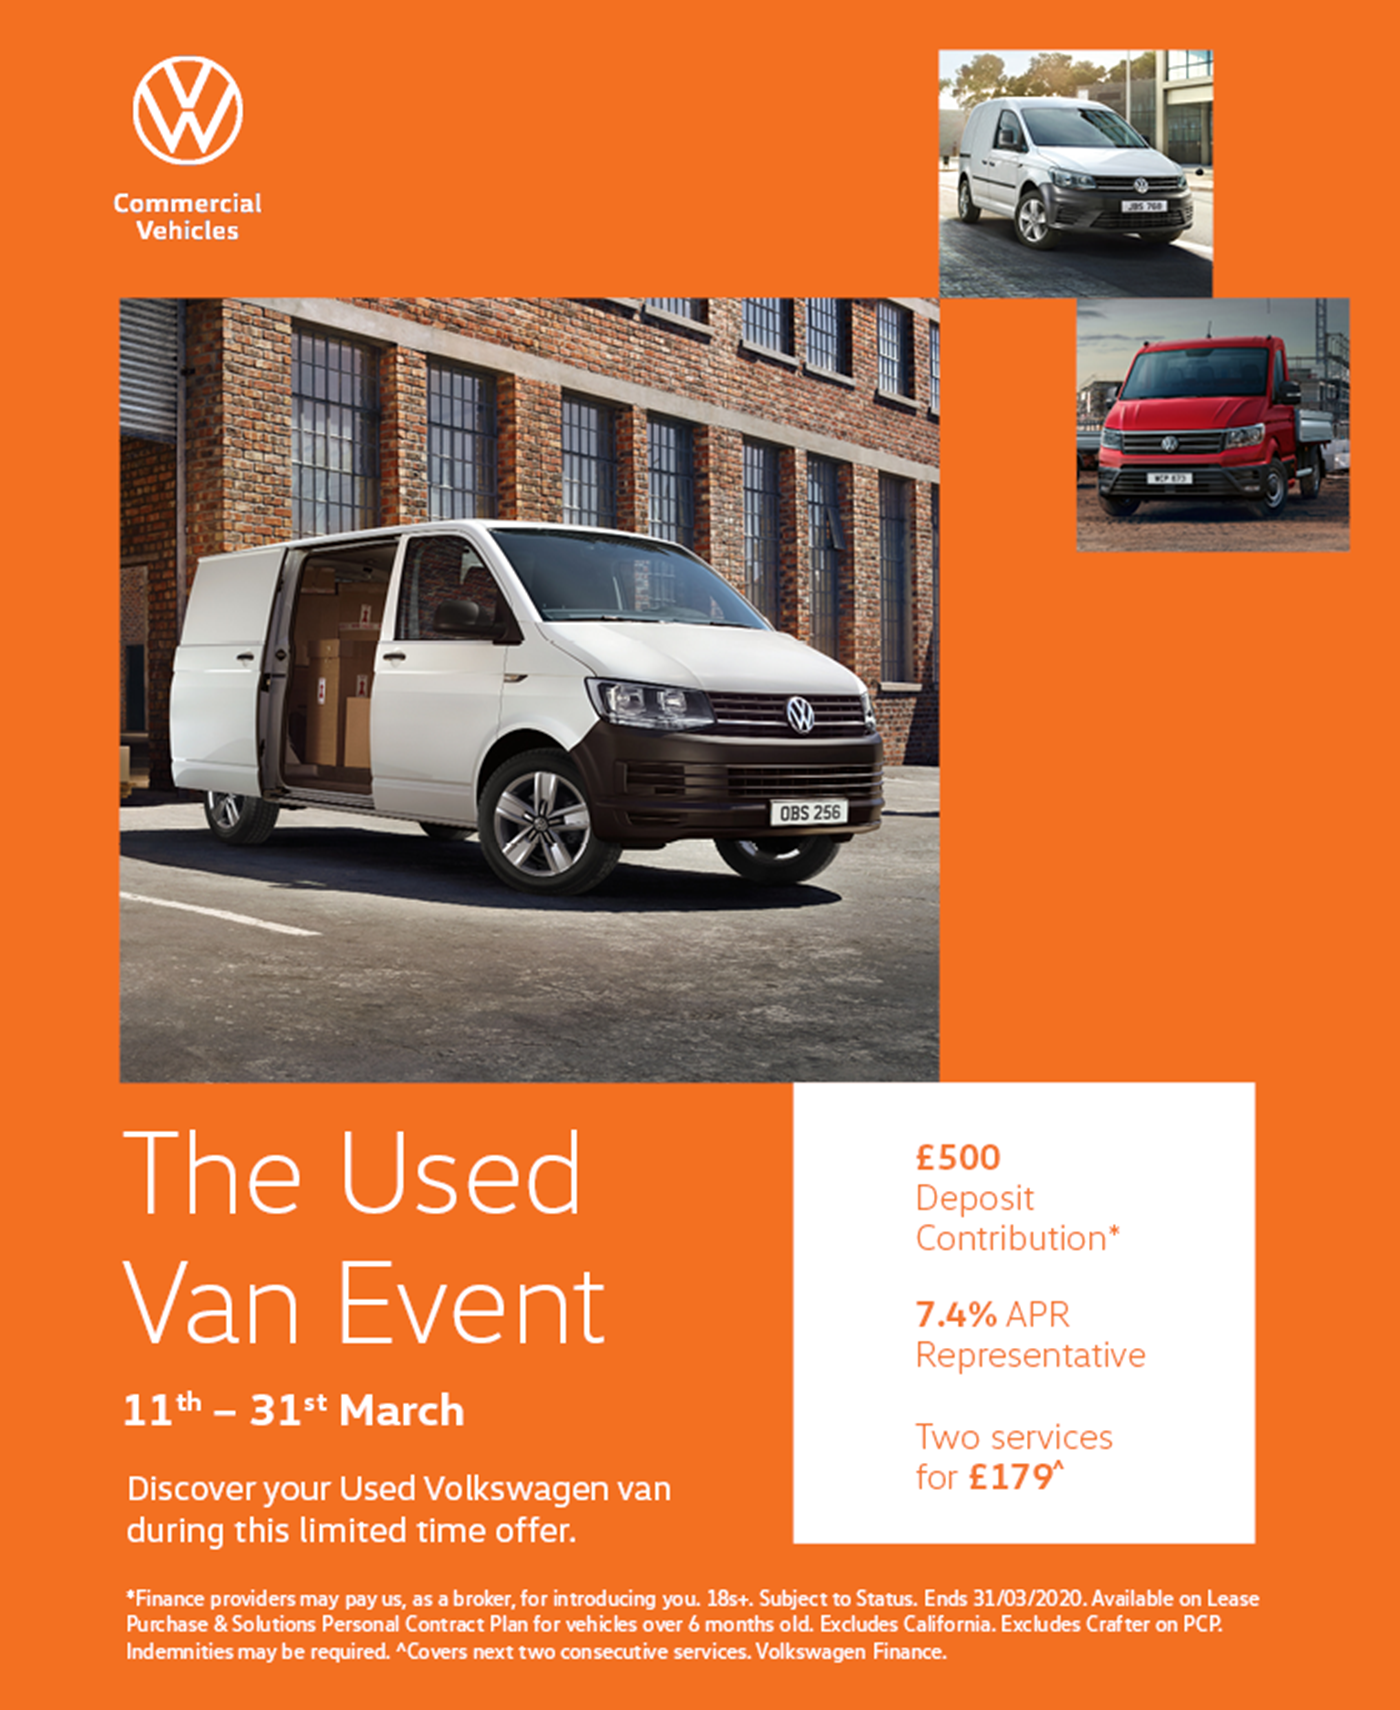 SMV Commercials Yeovil - VW Commercial Vehicle Used Van Event